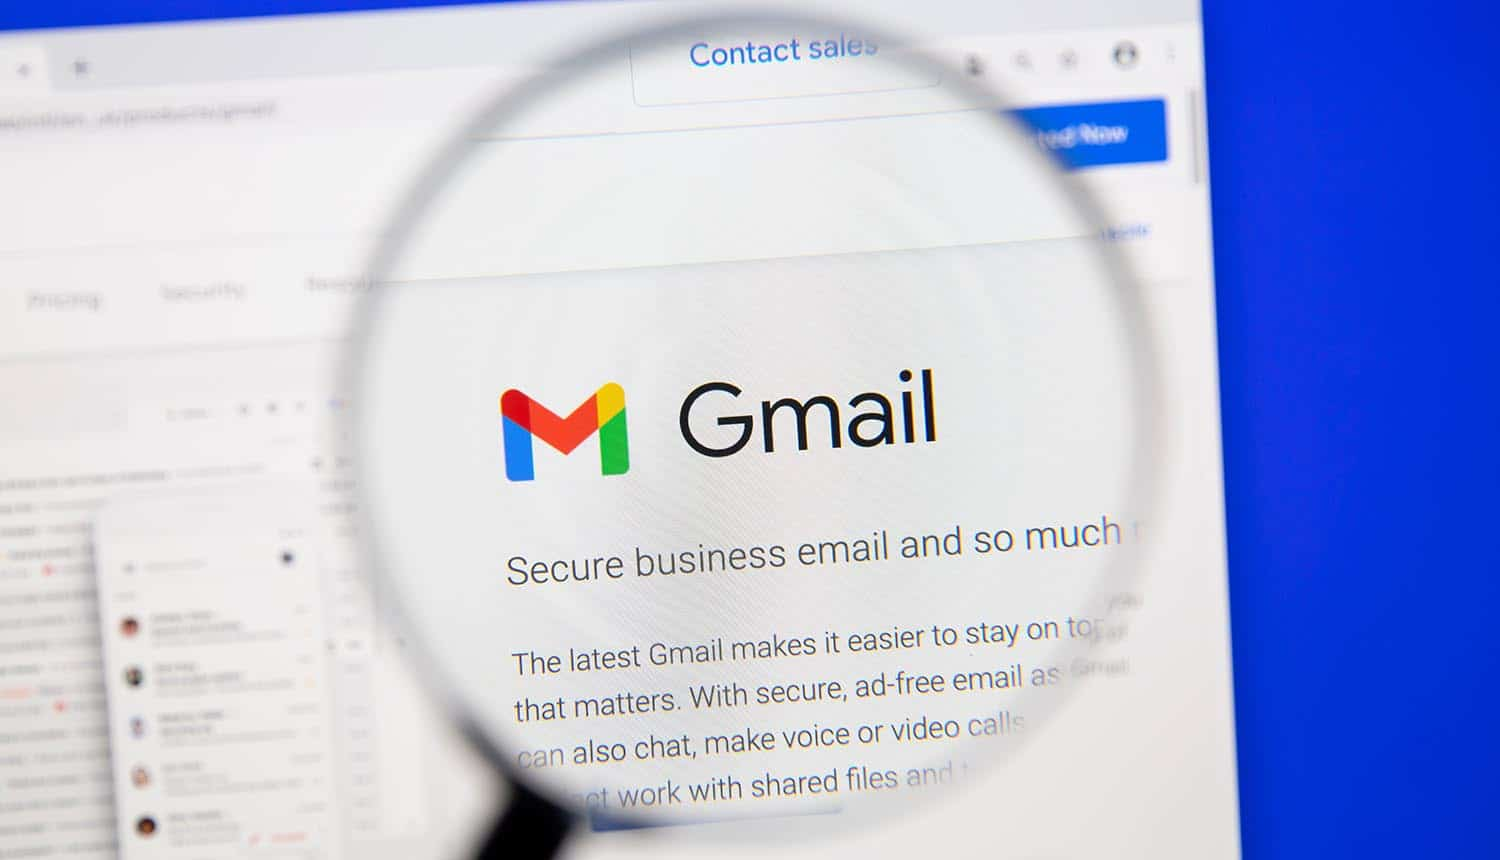 Google Gmail webpage under magnifying glass showing USB security key giveaway